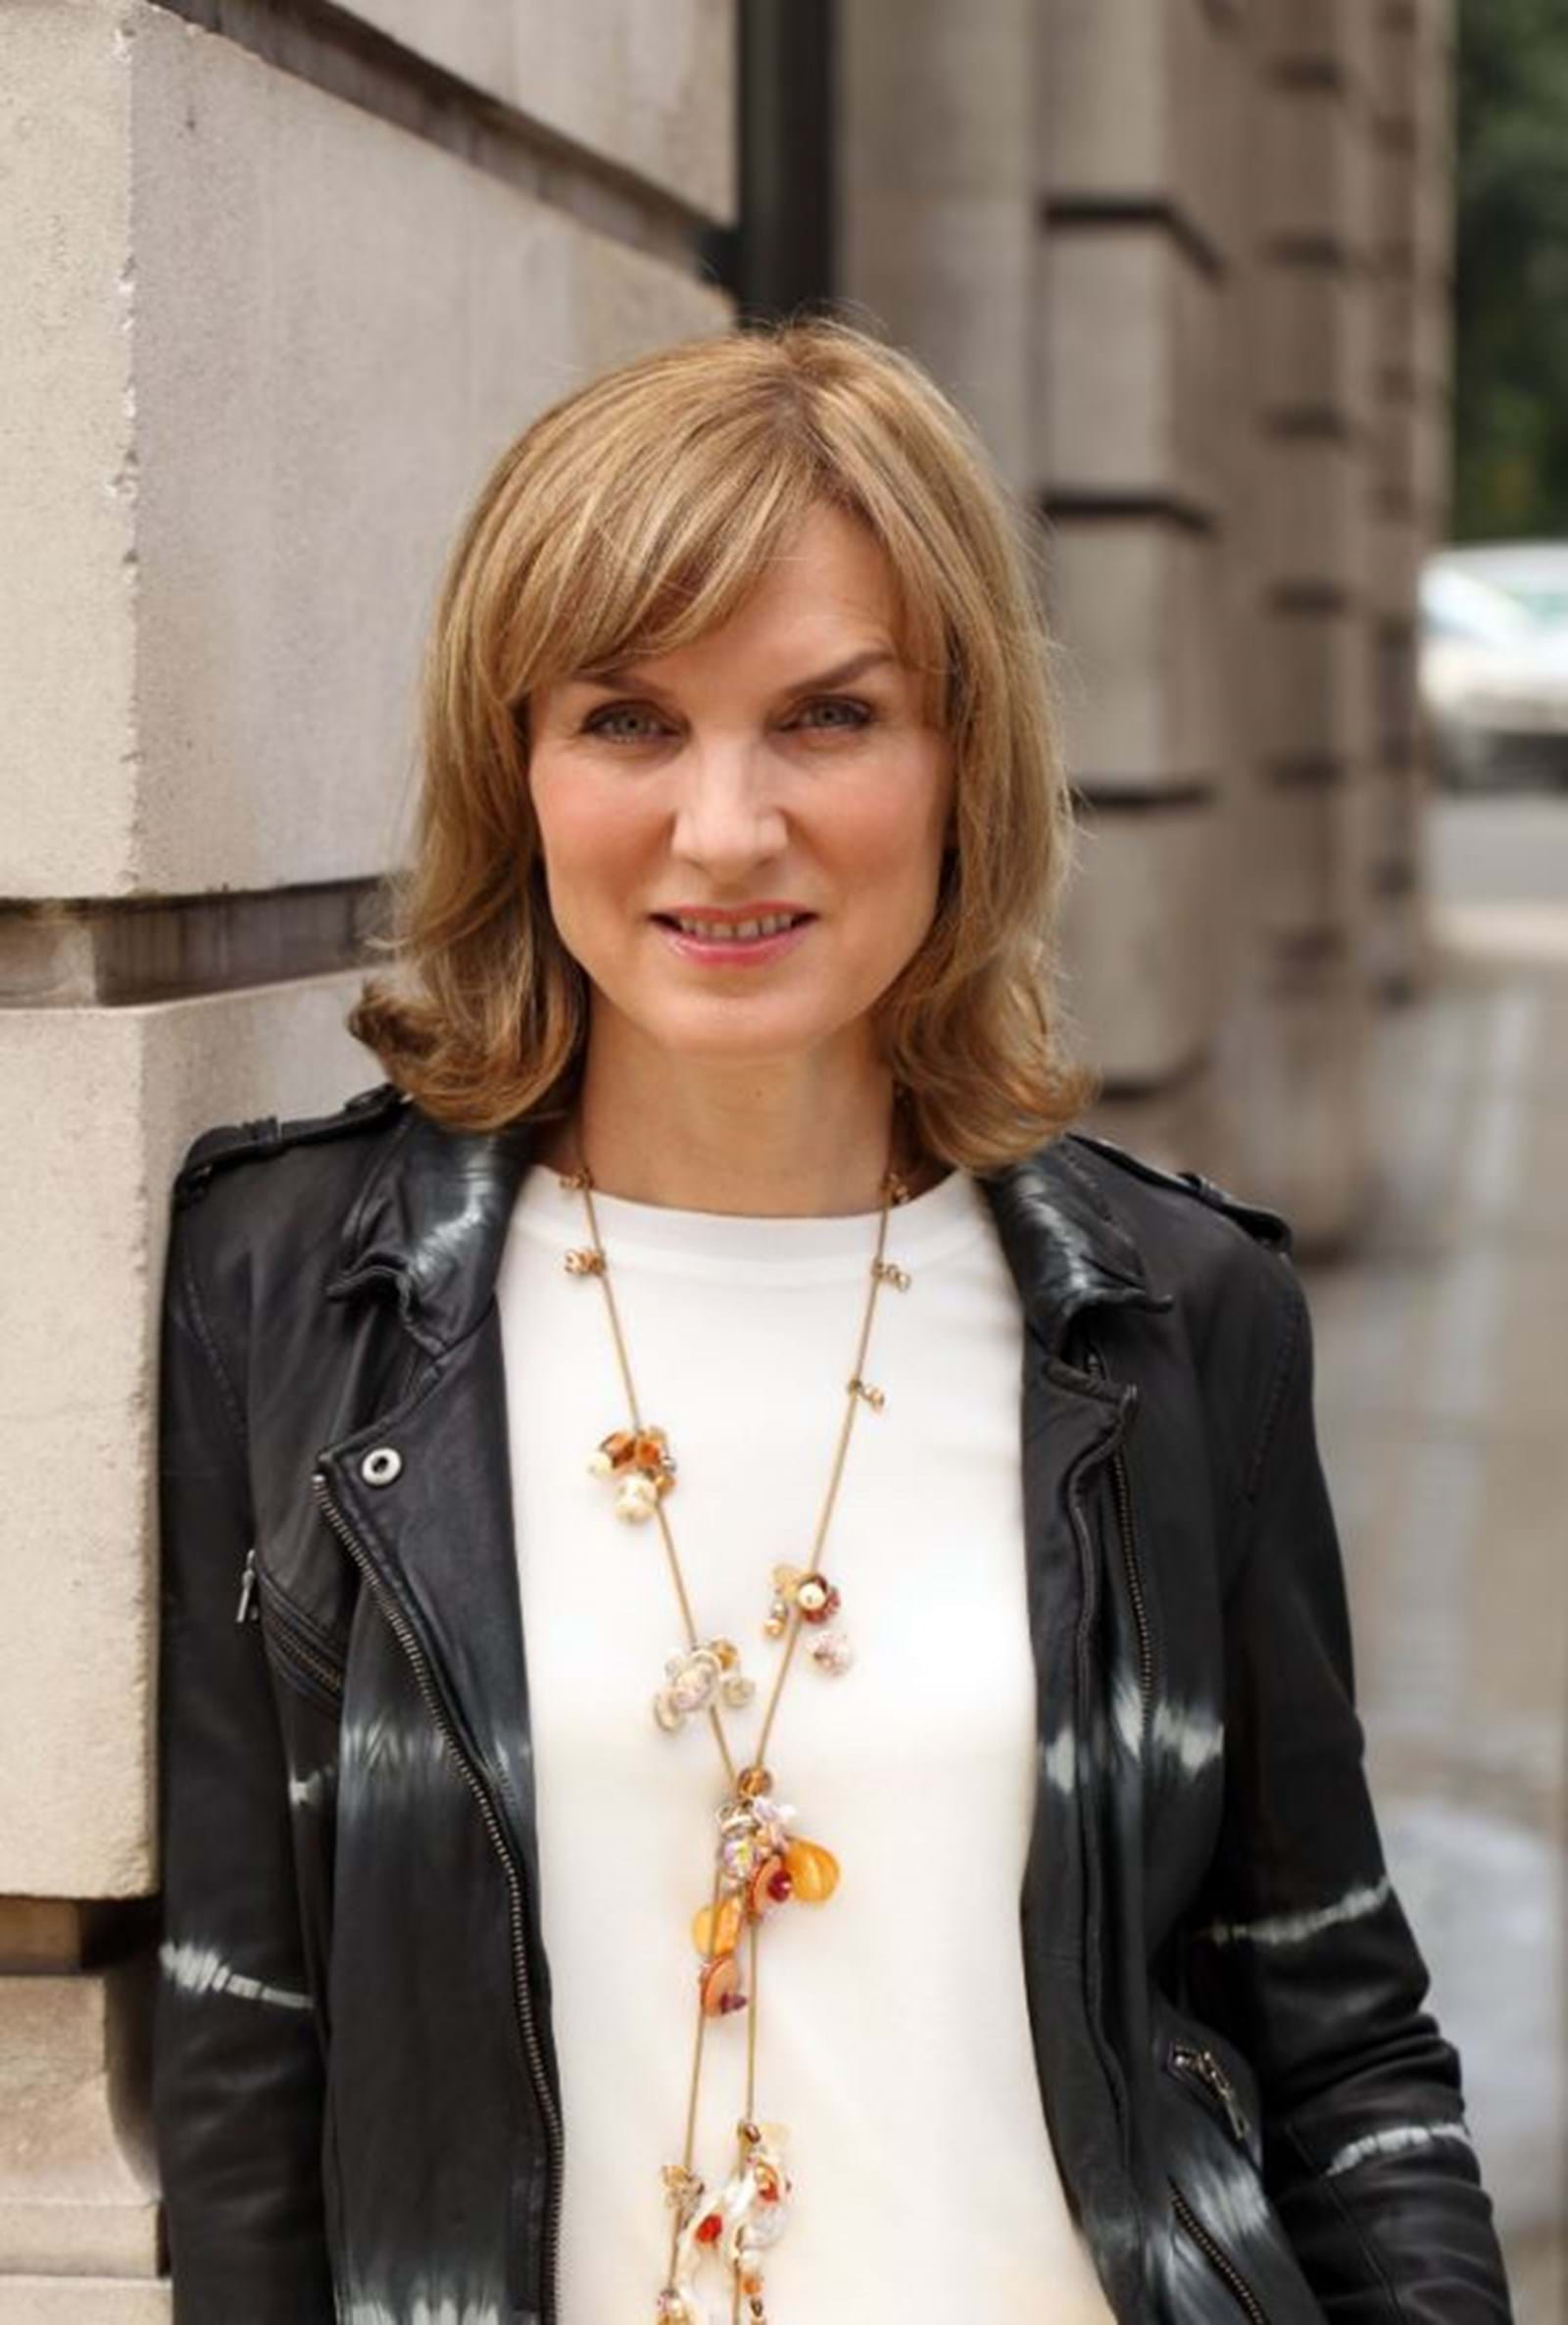 FIONA BRUCE ANNOUNCED AS NEW PRESENTER FOR MENTORN'S QUESTION TIME